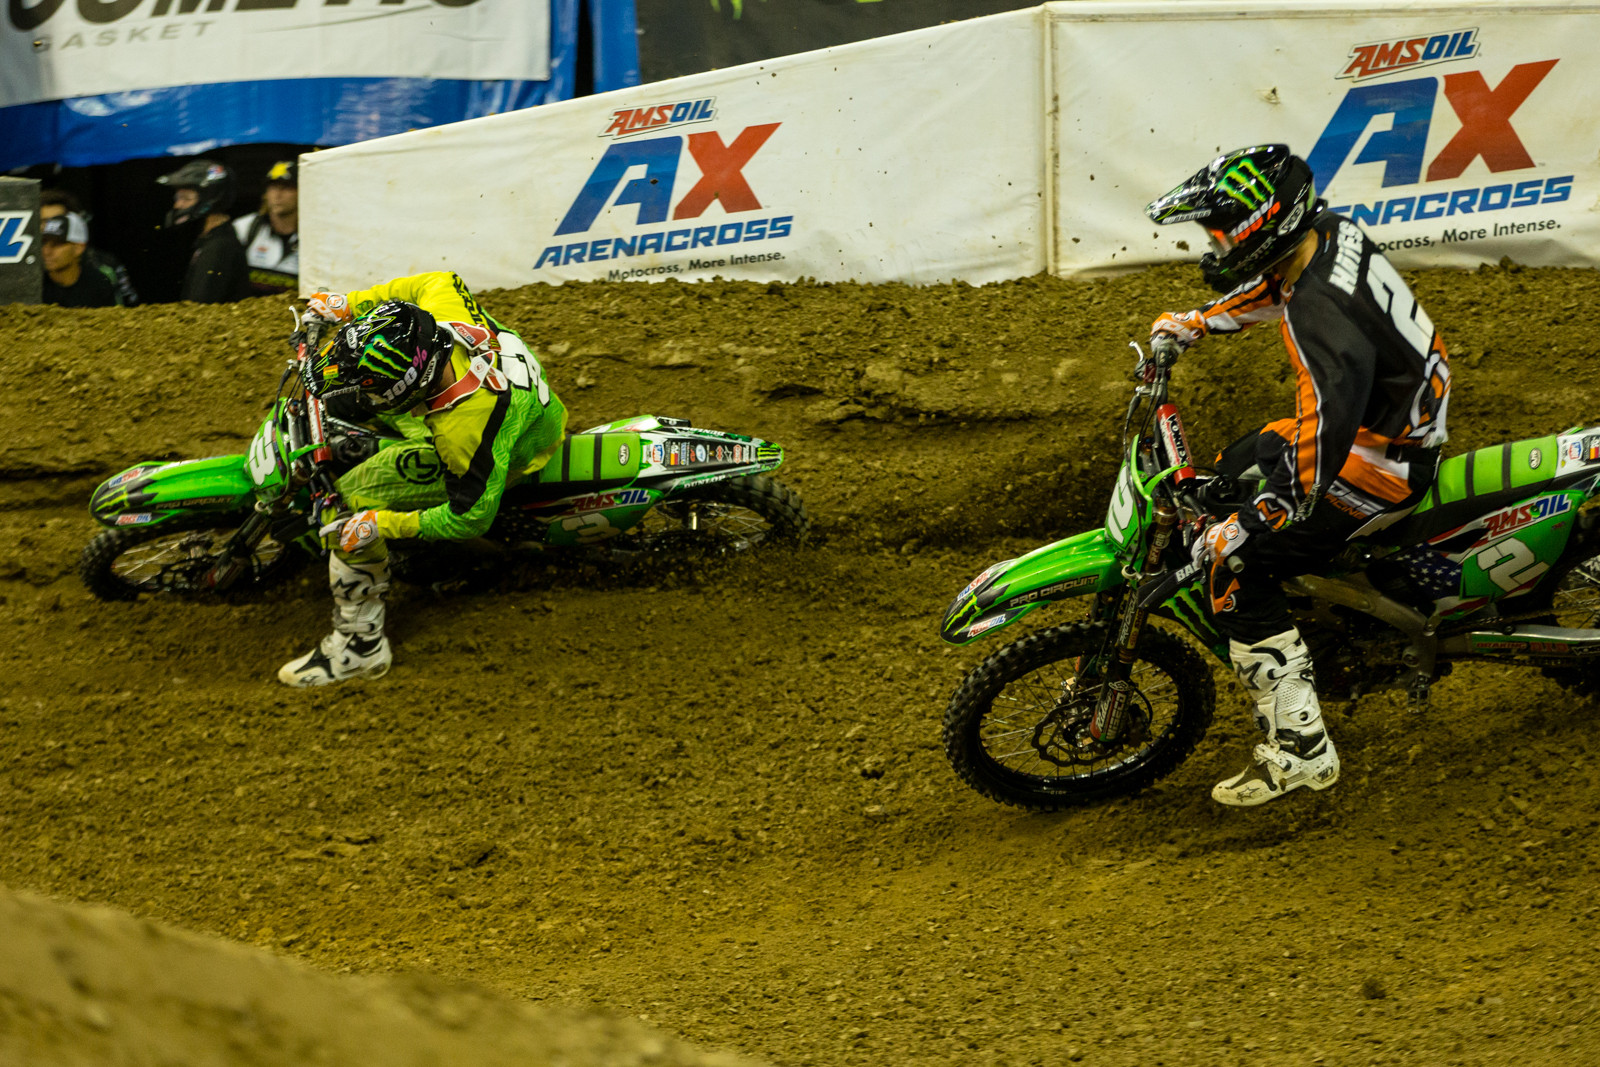 Gavin Faith and Jacob Hayes - Photo Gallery: Ontario Arenacross - Saturday Night - Motocross Pictures - Vital MX